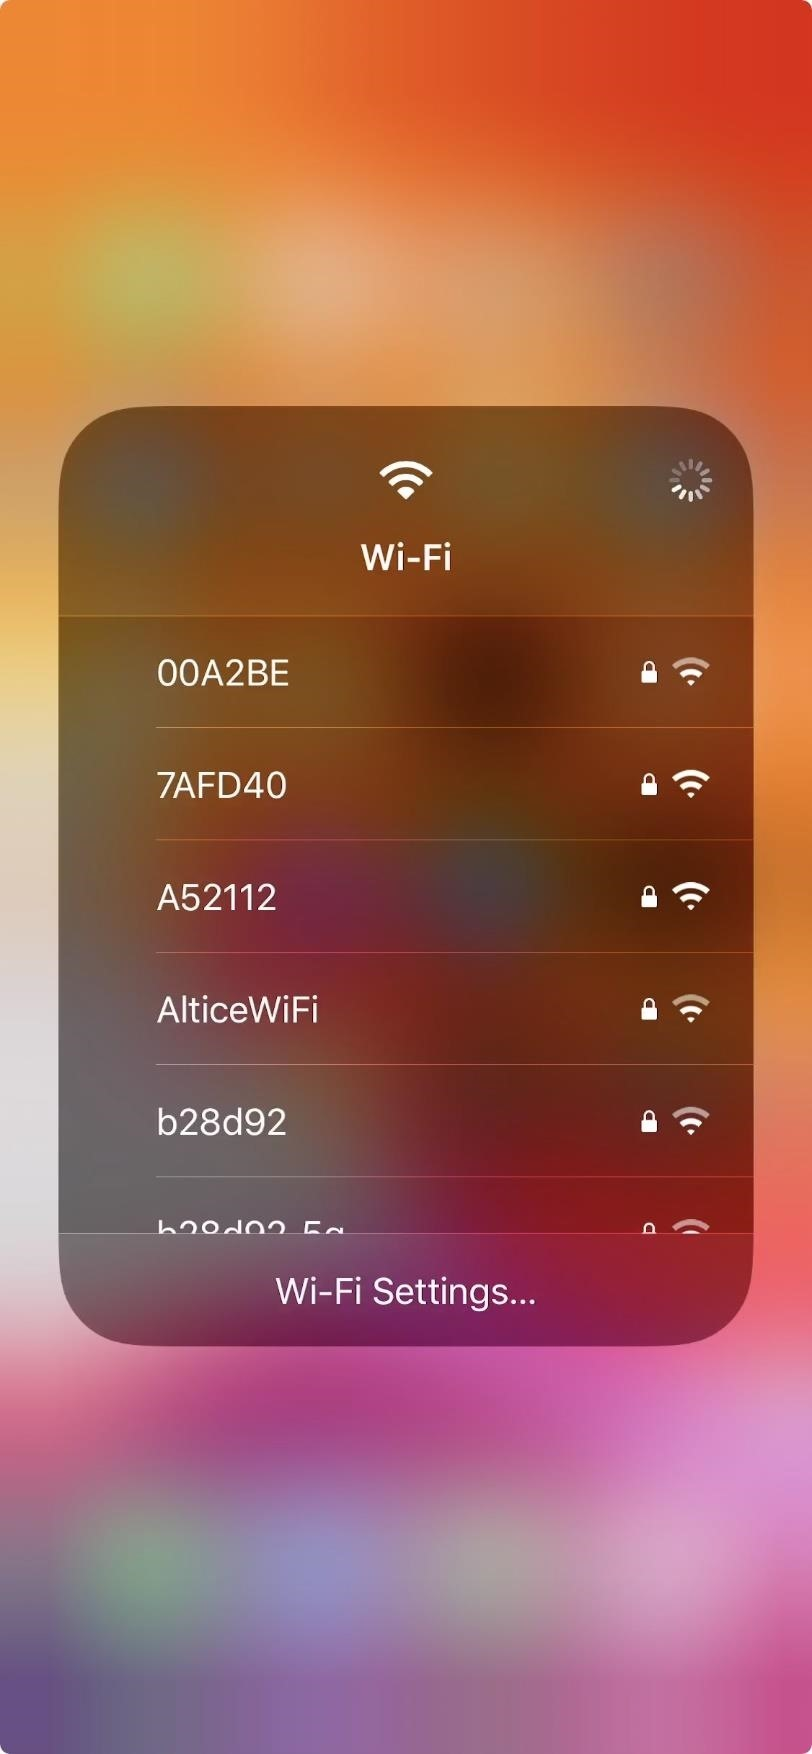 You do not need to open the settings to switch to Wi-Fi and connect to your iPhone (FINALLY!)!